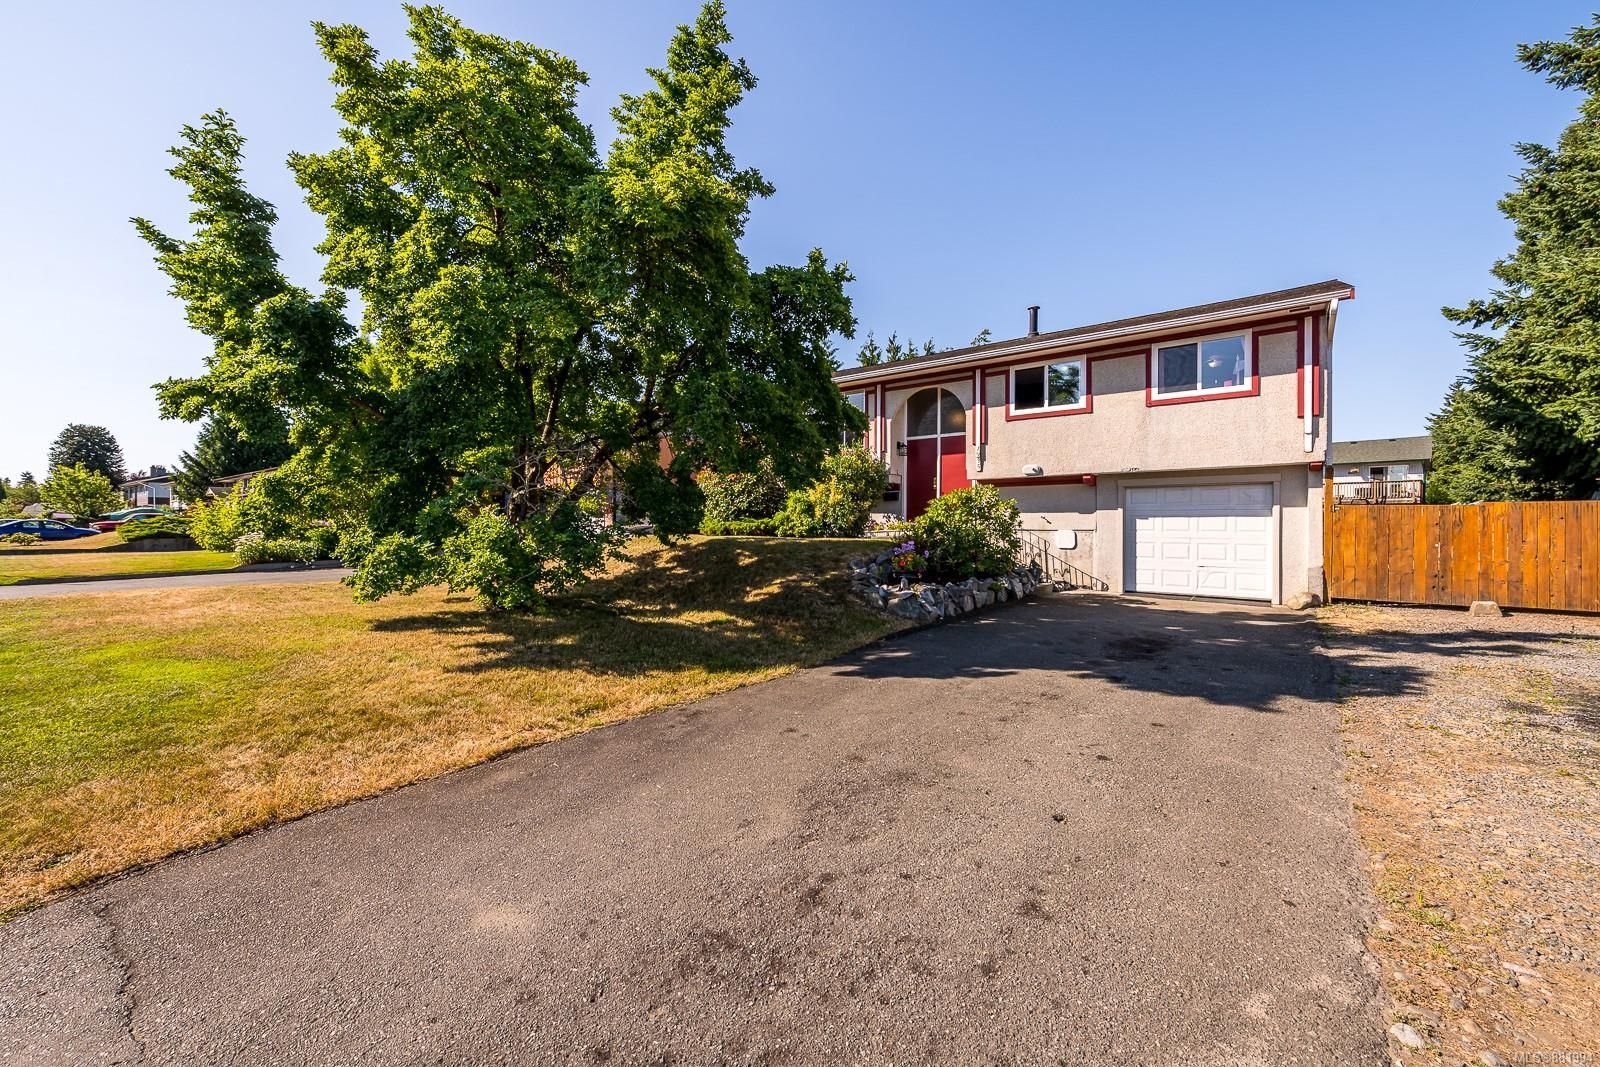 Photo 22: Photos: 1935 Fitzgerald Ave in : CV Courtenay City House for sale (Comox Valley)  : MLS®# 881994